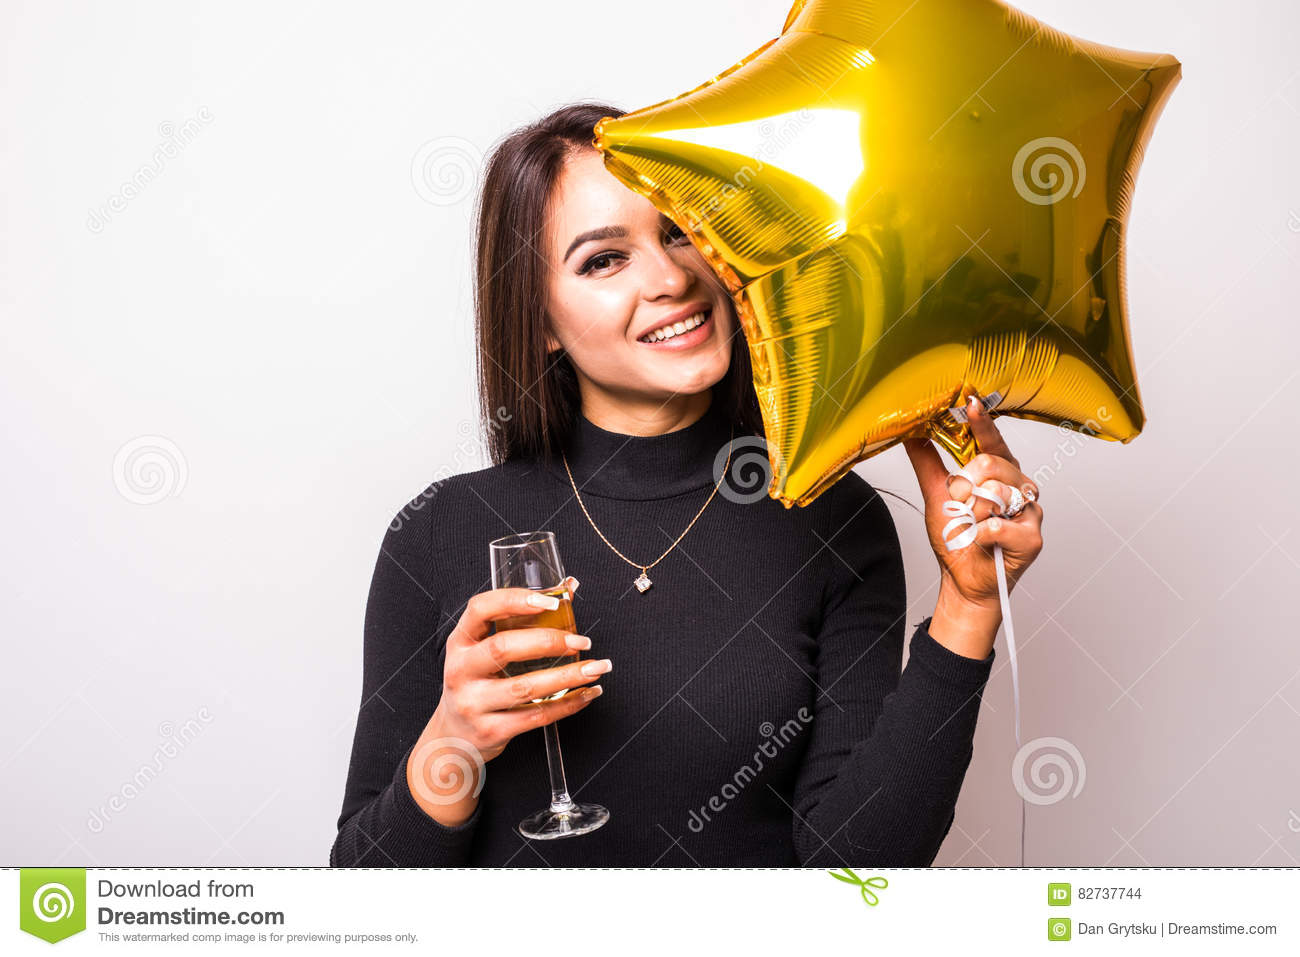 59480f93ecdd Pretty young woman in black dress with gold star shaped balloon smiling and drinking  champagne over white background